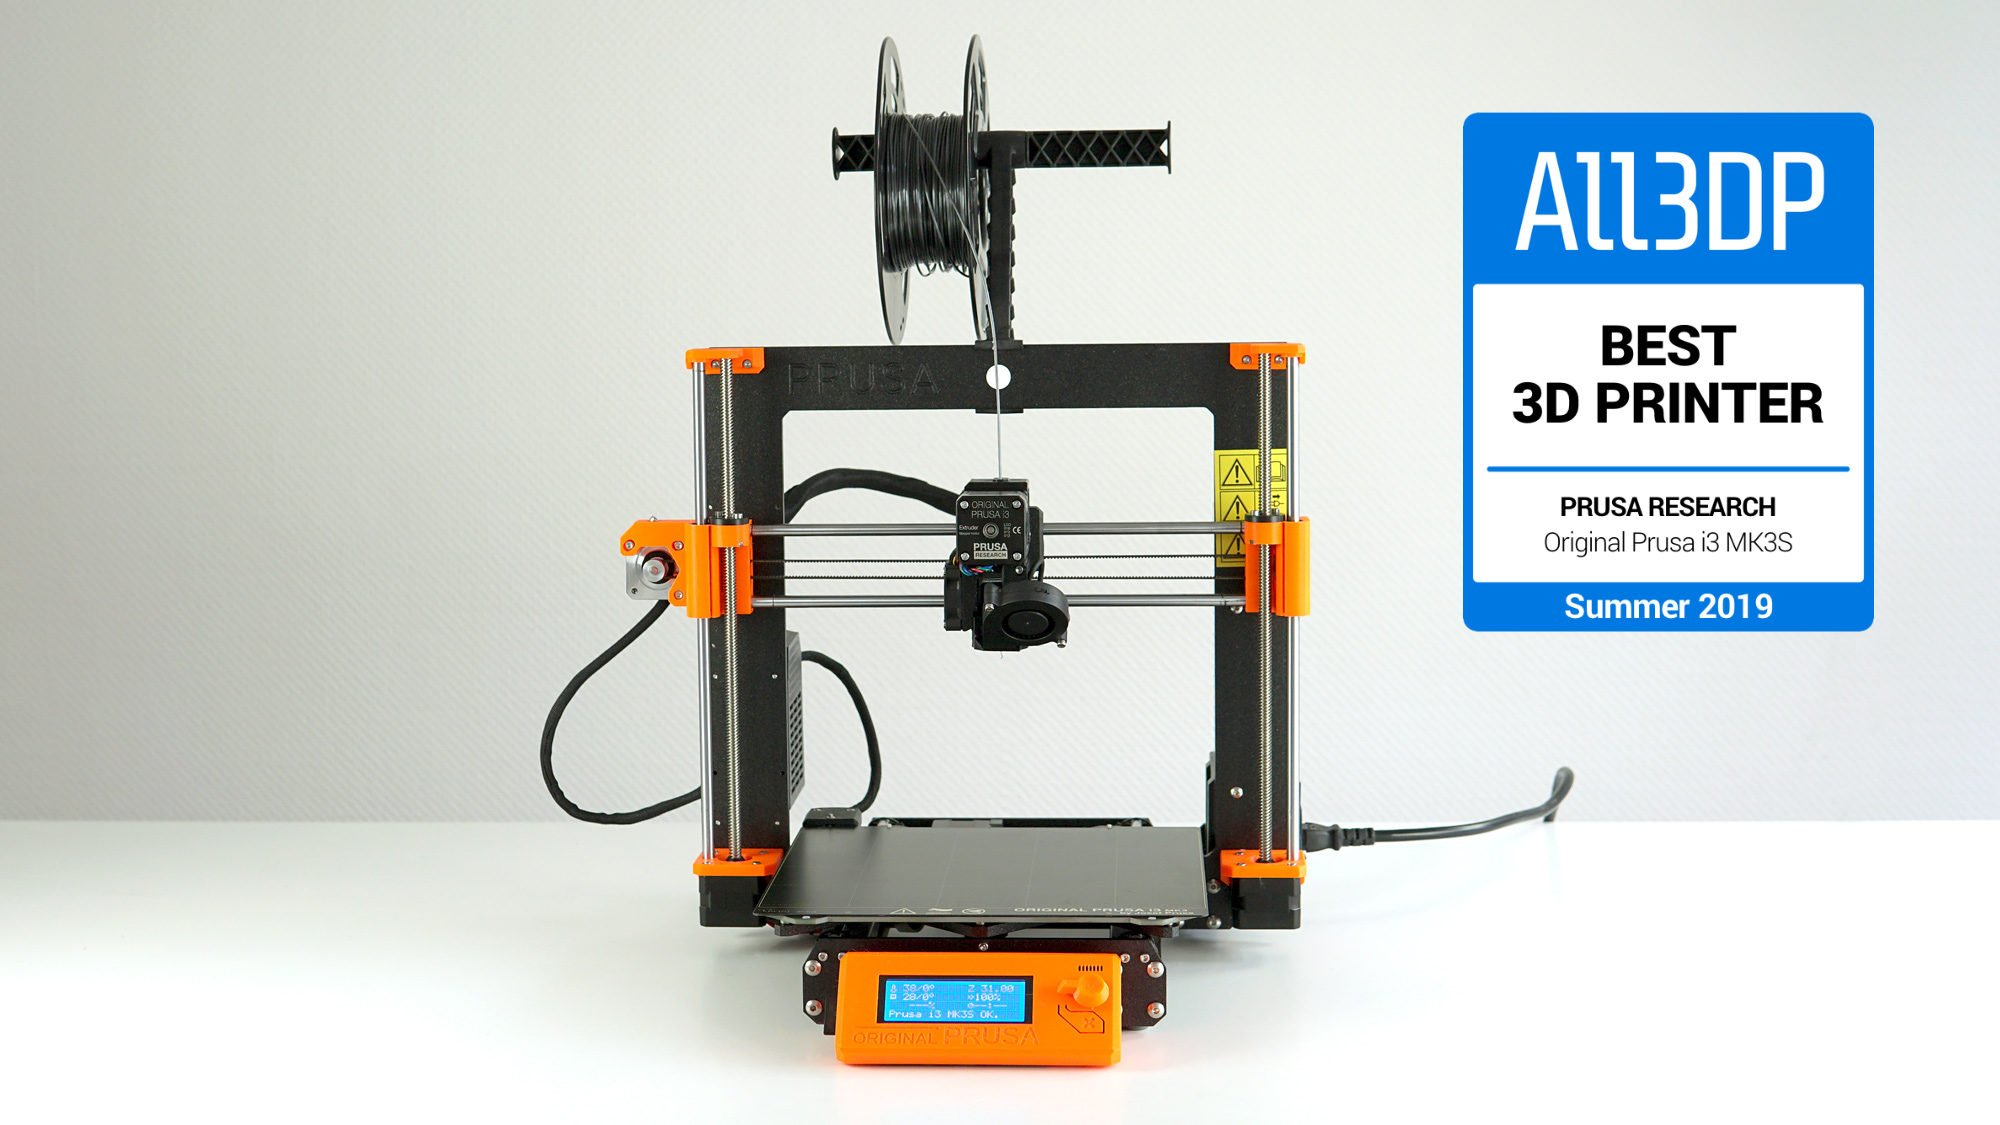 2019 Original Prusa i3 MK3S Review – Simply the Best | All3DP